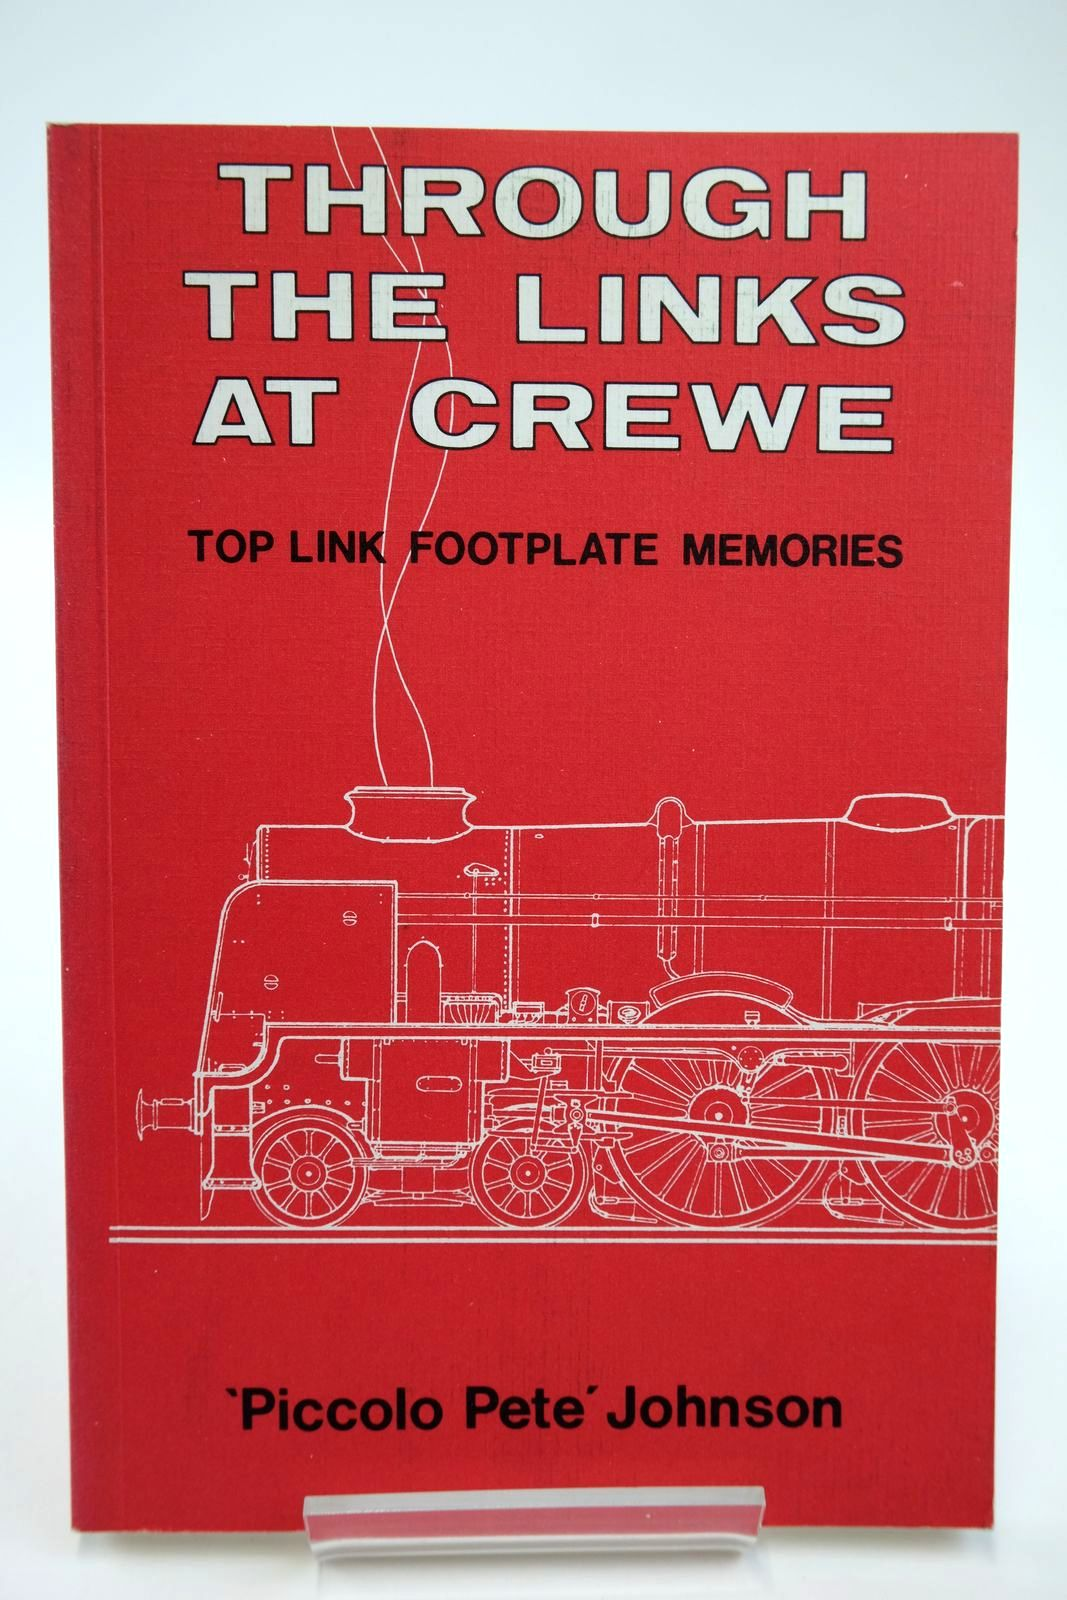 Photo of THROUGH THE LINKS AT CREWE TOP LINK FOOTPLATE MEMORIES written by Johnson, P.G. published by D. Bradford Barton (STOCK CODE: 2133718)  for sale by Stella & Rose's Books